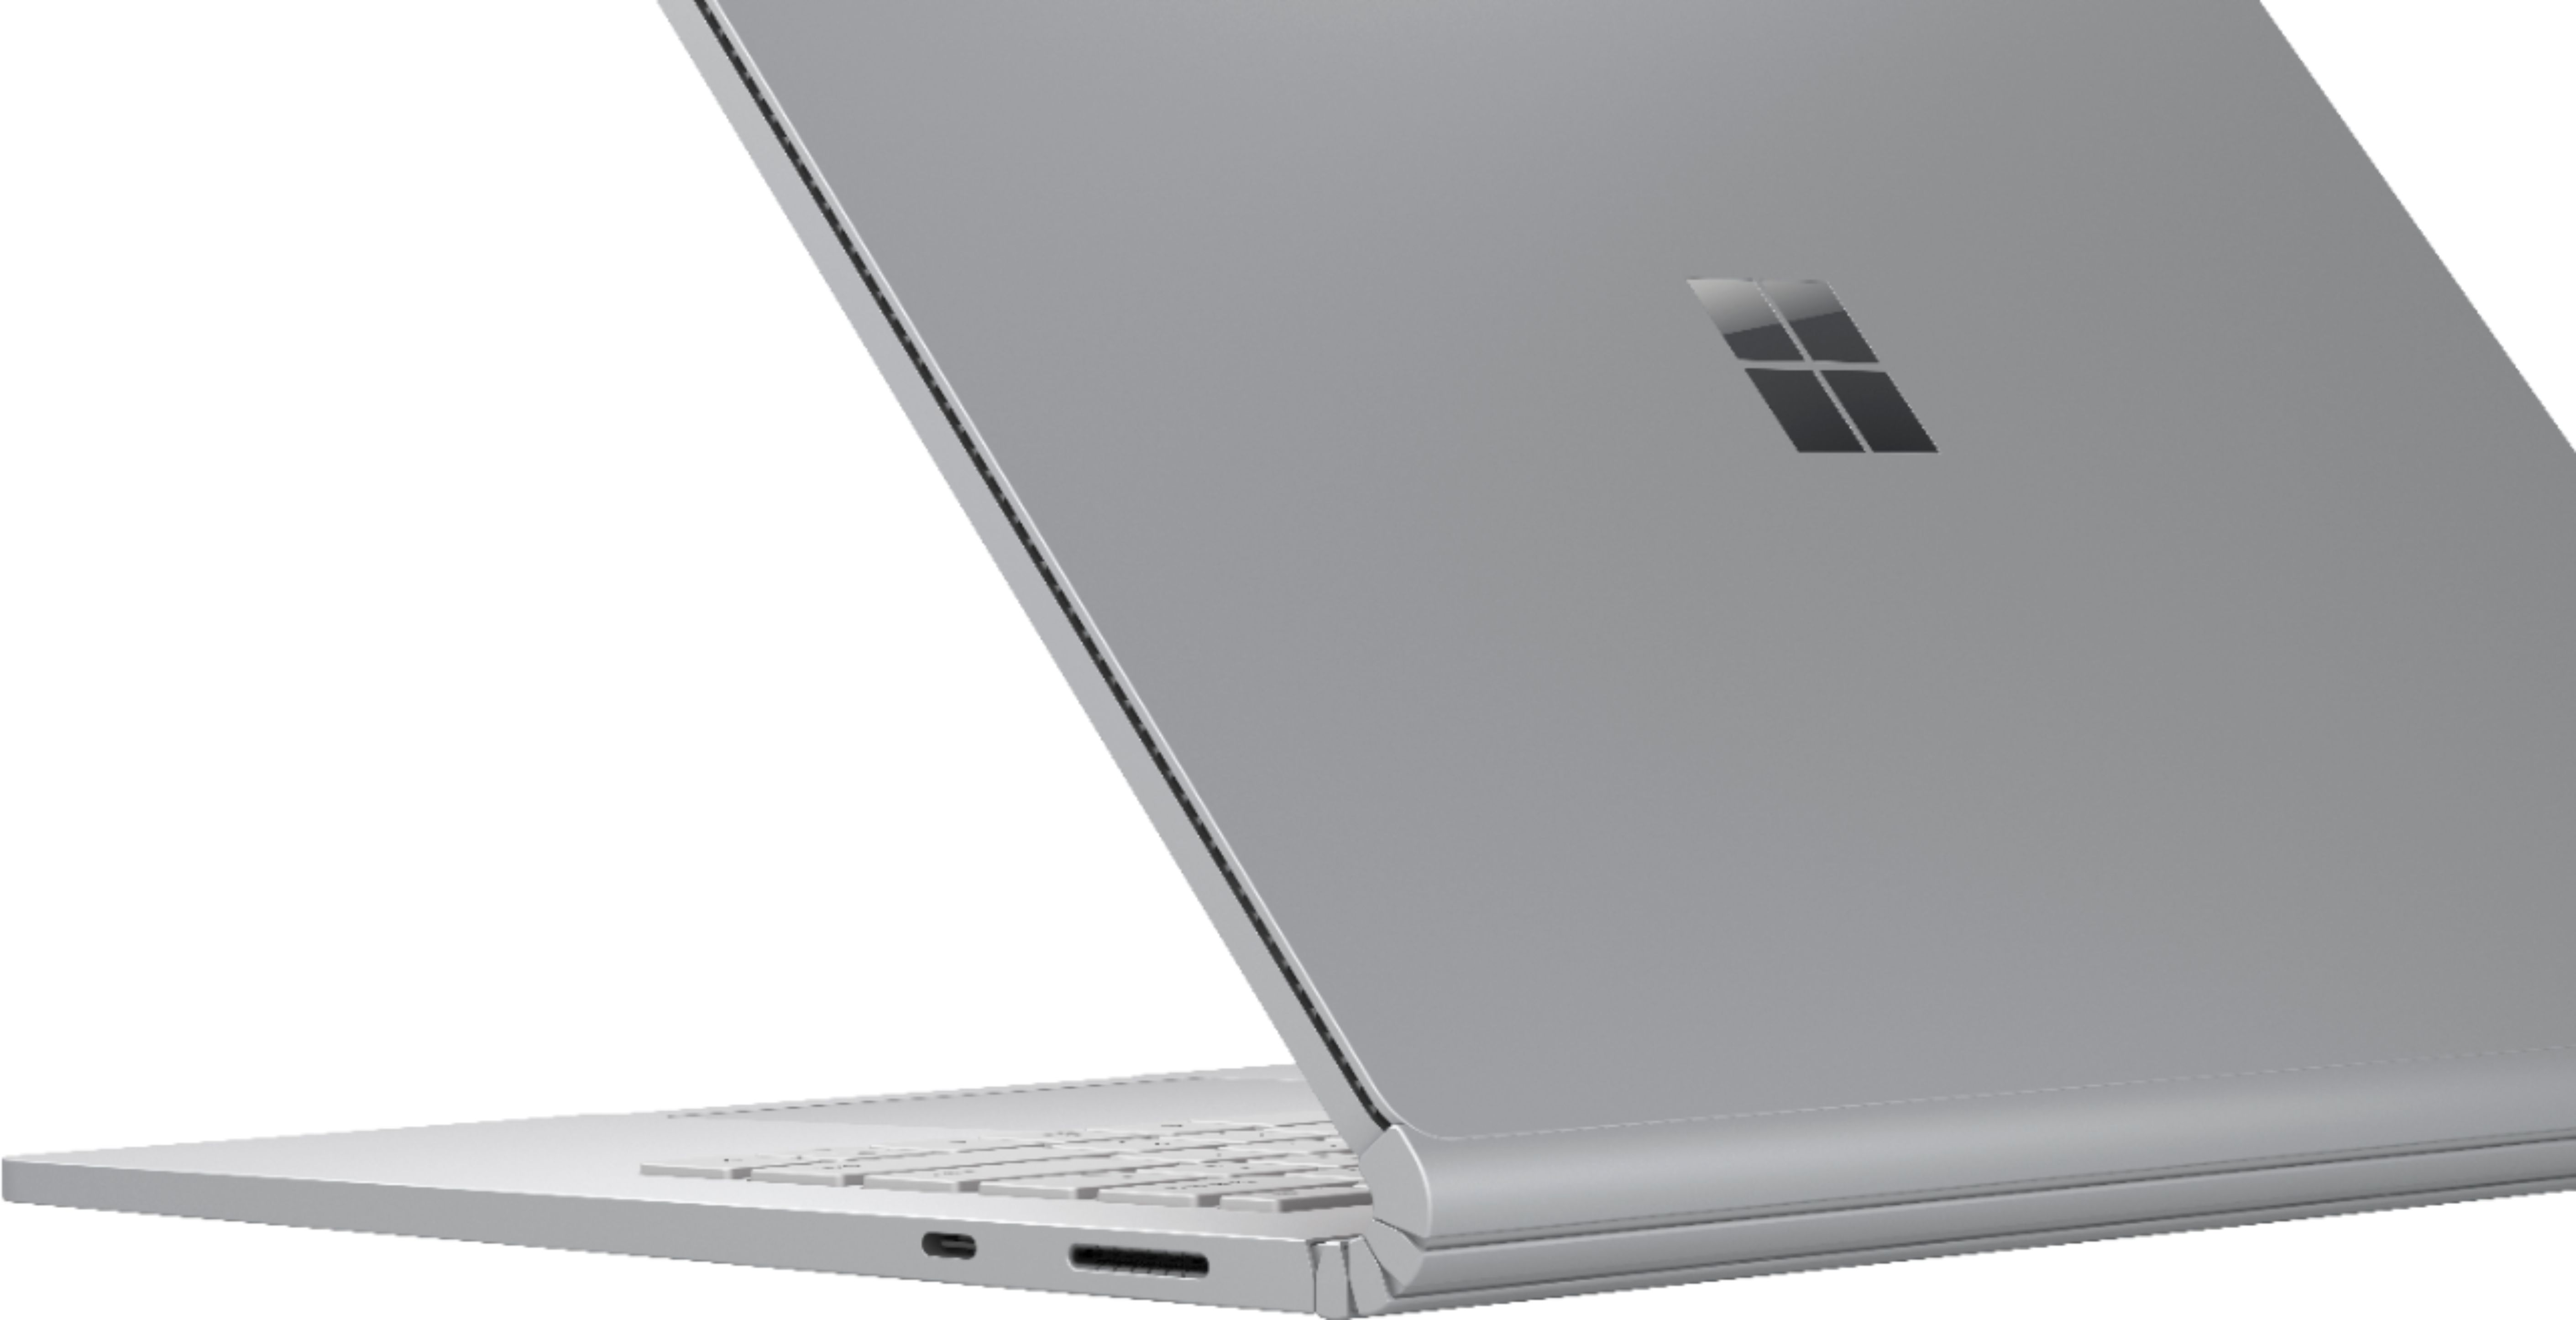 """Alt View Zoom 12. Microsoft - Surface Book 3 13.5"""" Touch-Screen PixelSense™ - 2-in-1 Laptop - Intel Core i7 - 32GB Memory - 1TB SSD - Platinum."""